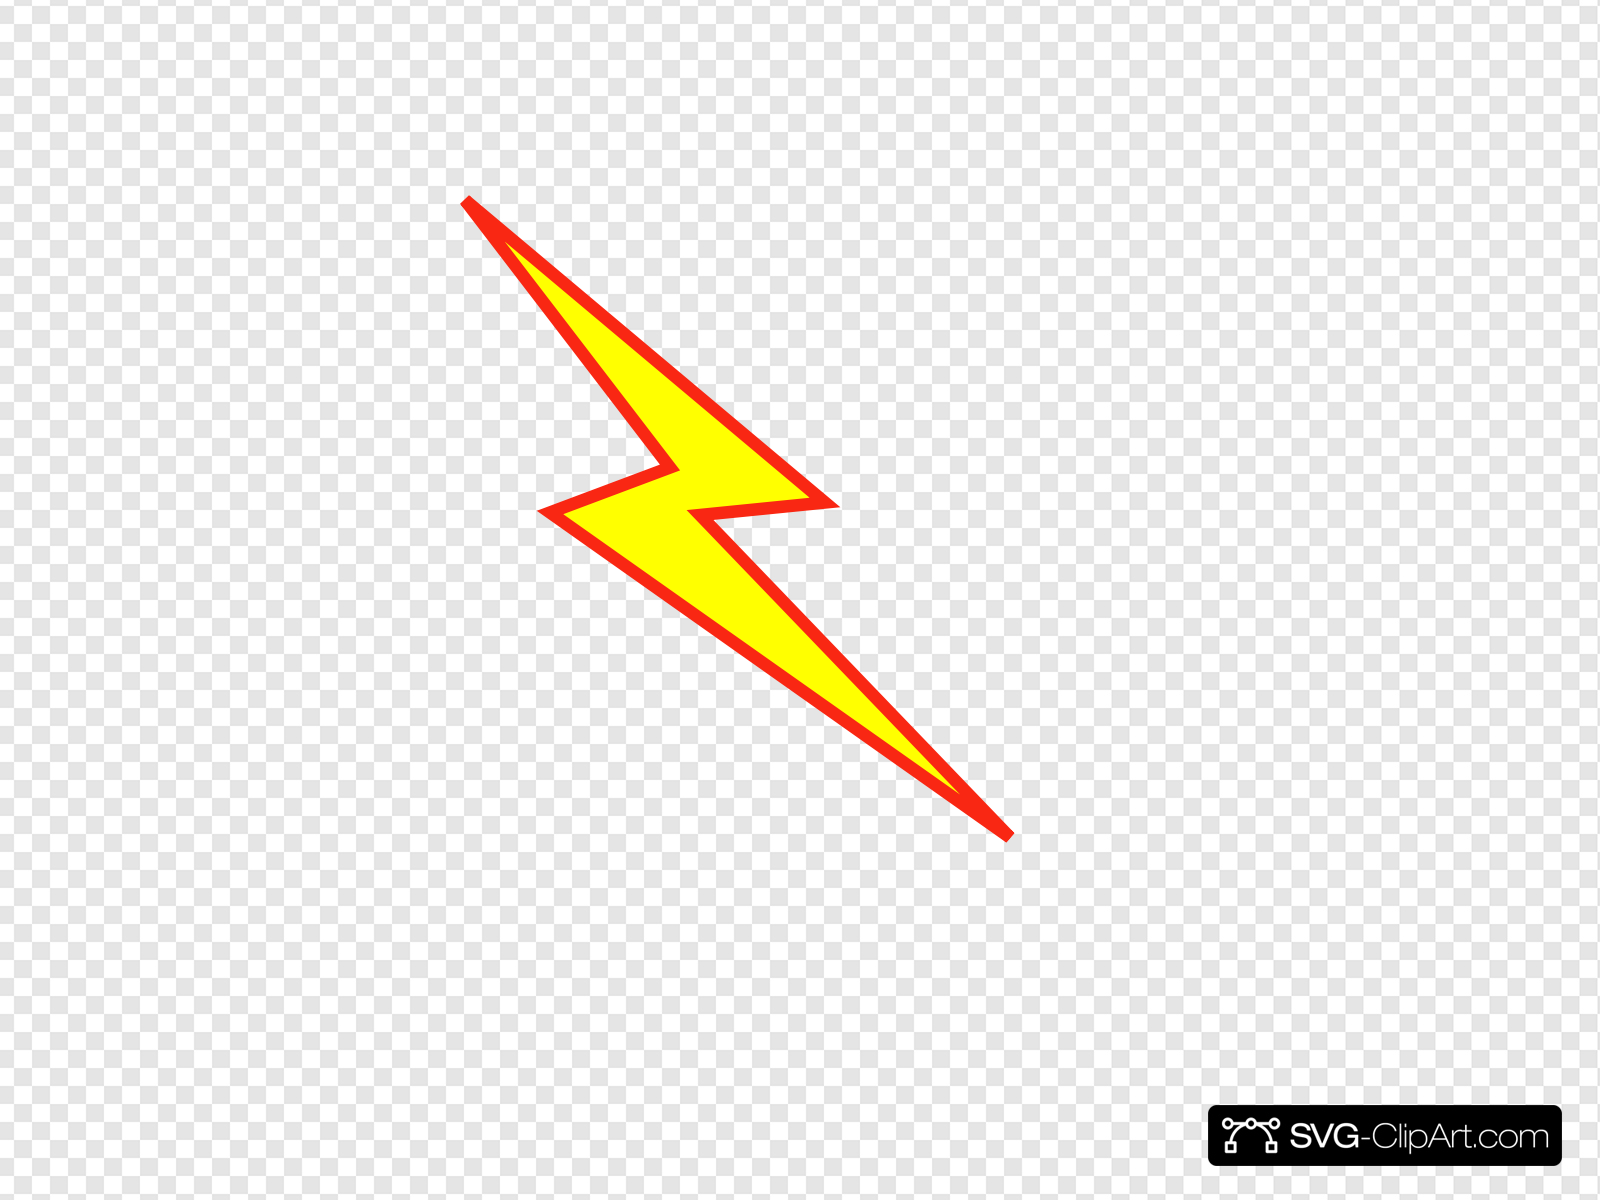 Red And Yellow Lightning Bolt Clip art, Icon and SVG.